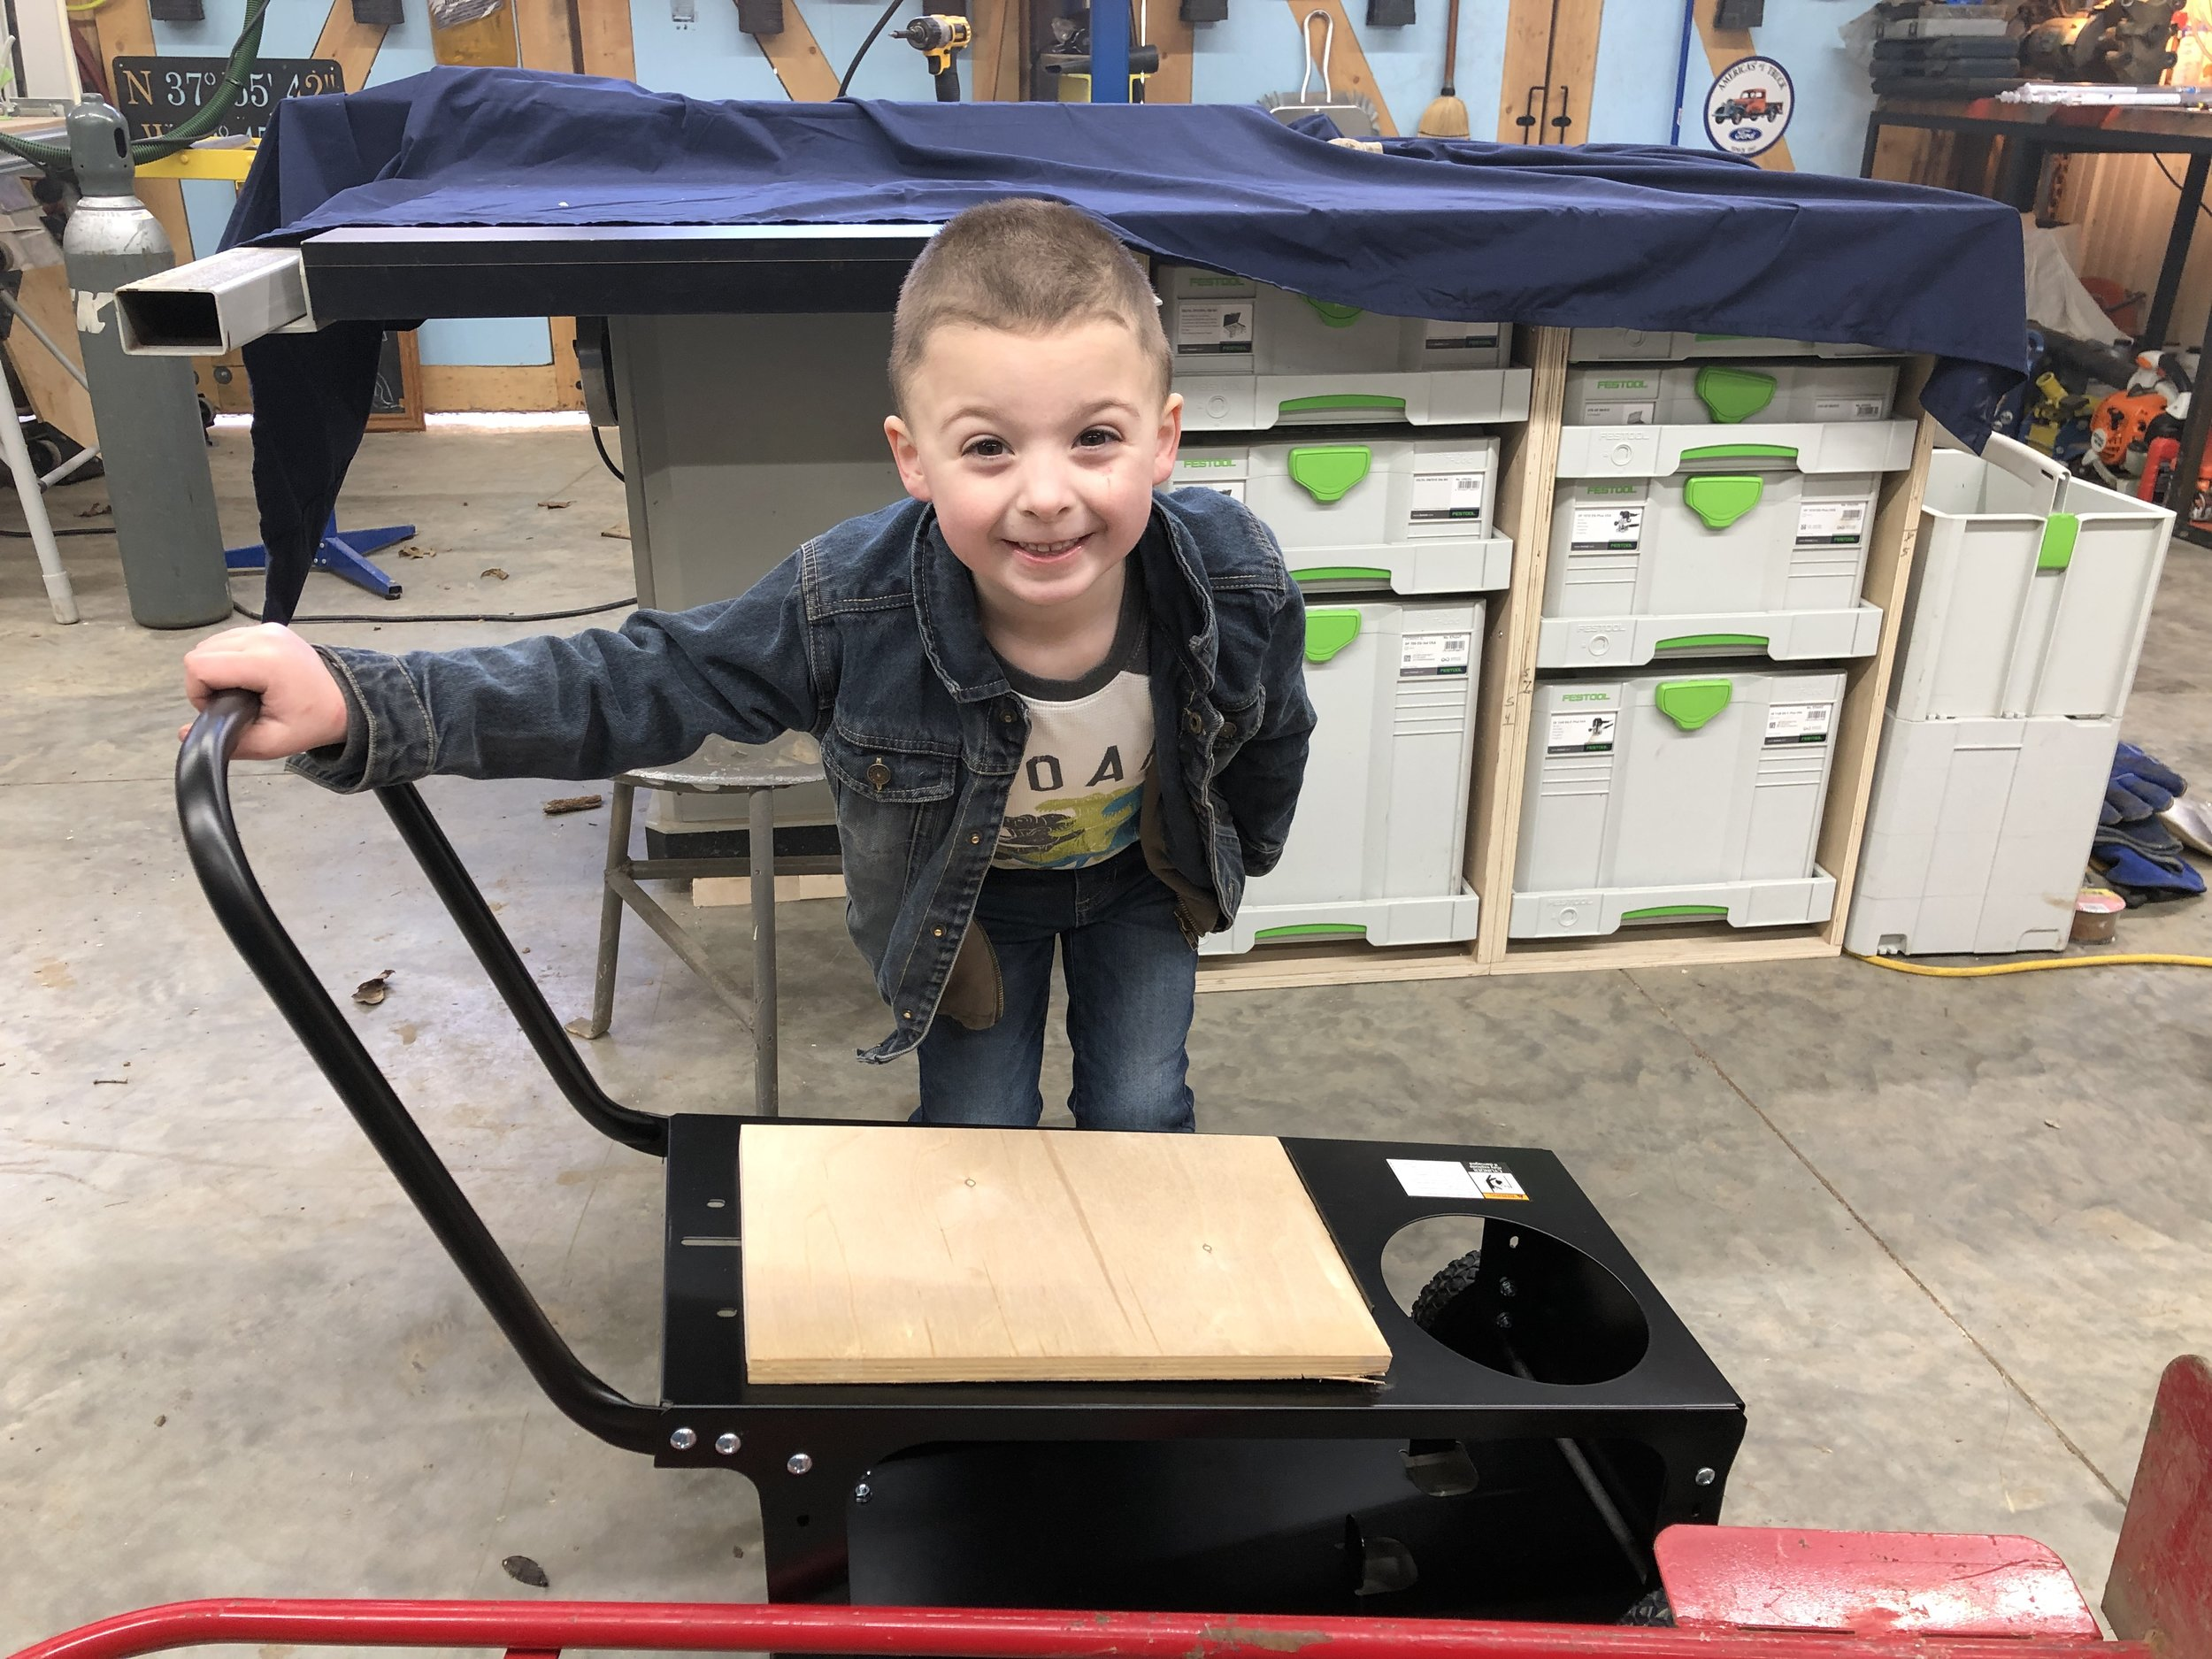 Luke putting together the new Welding Cart